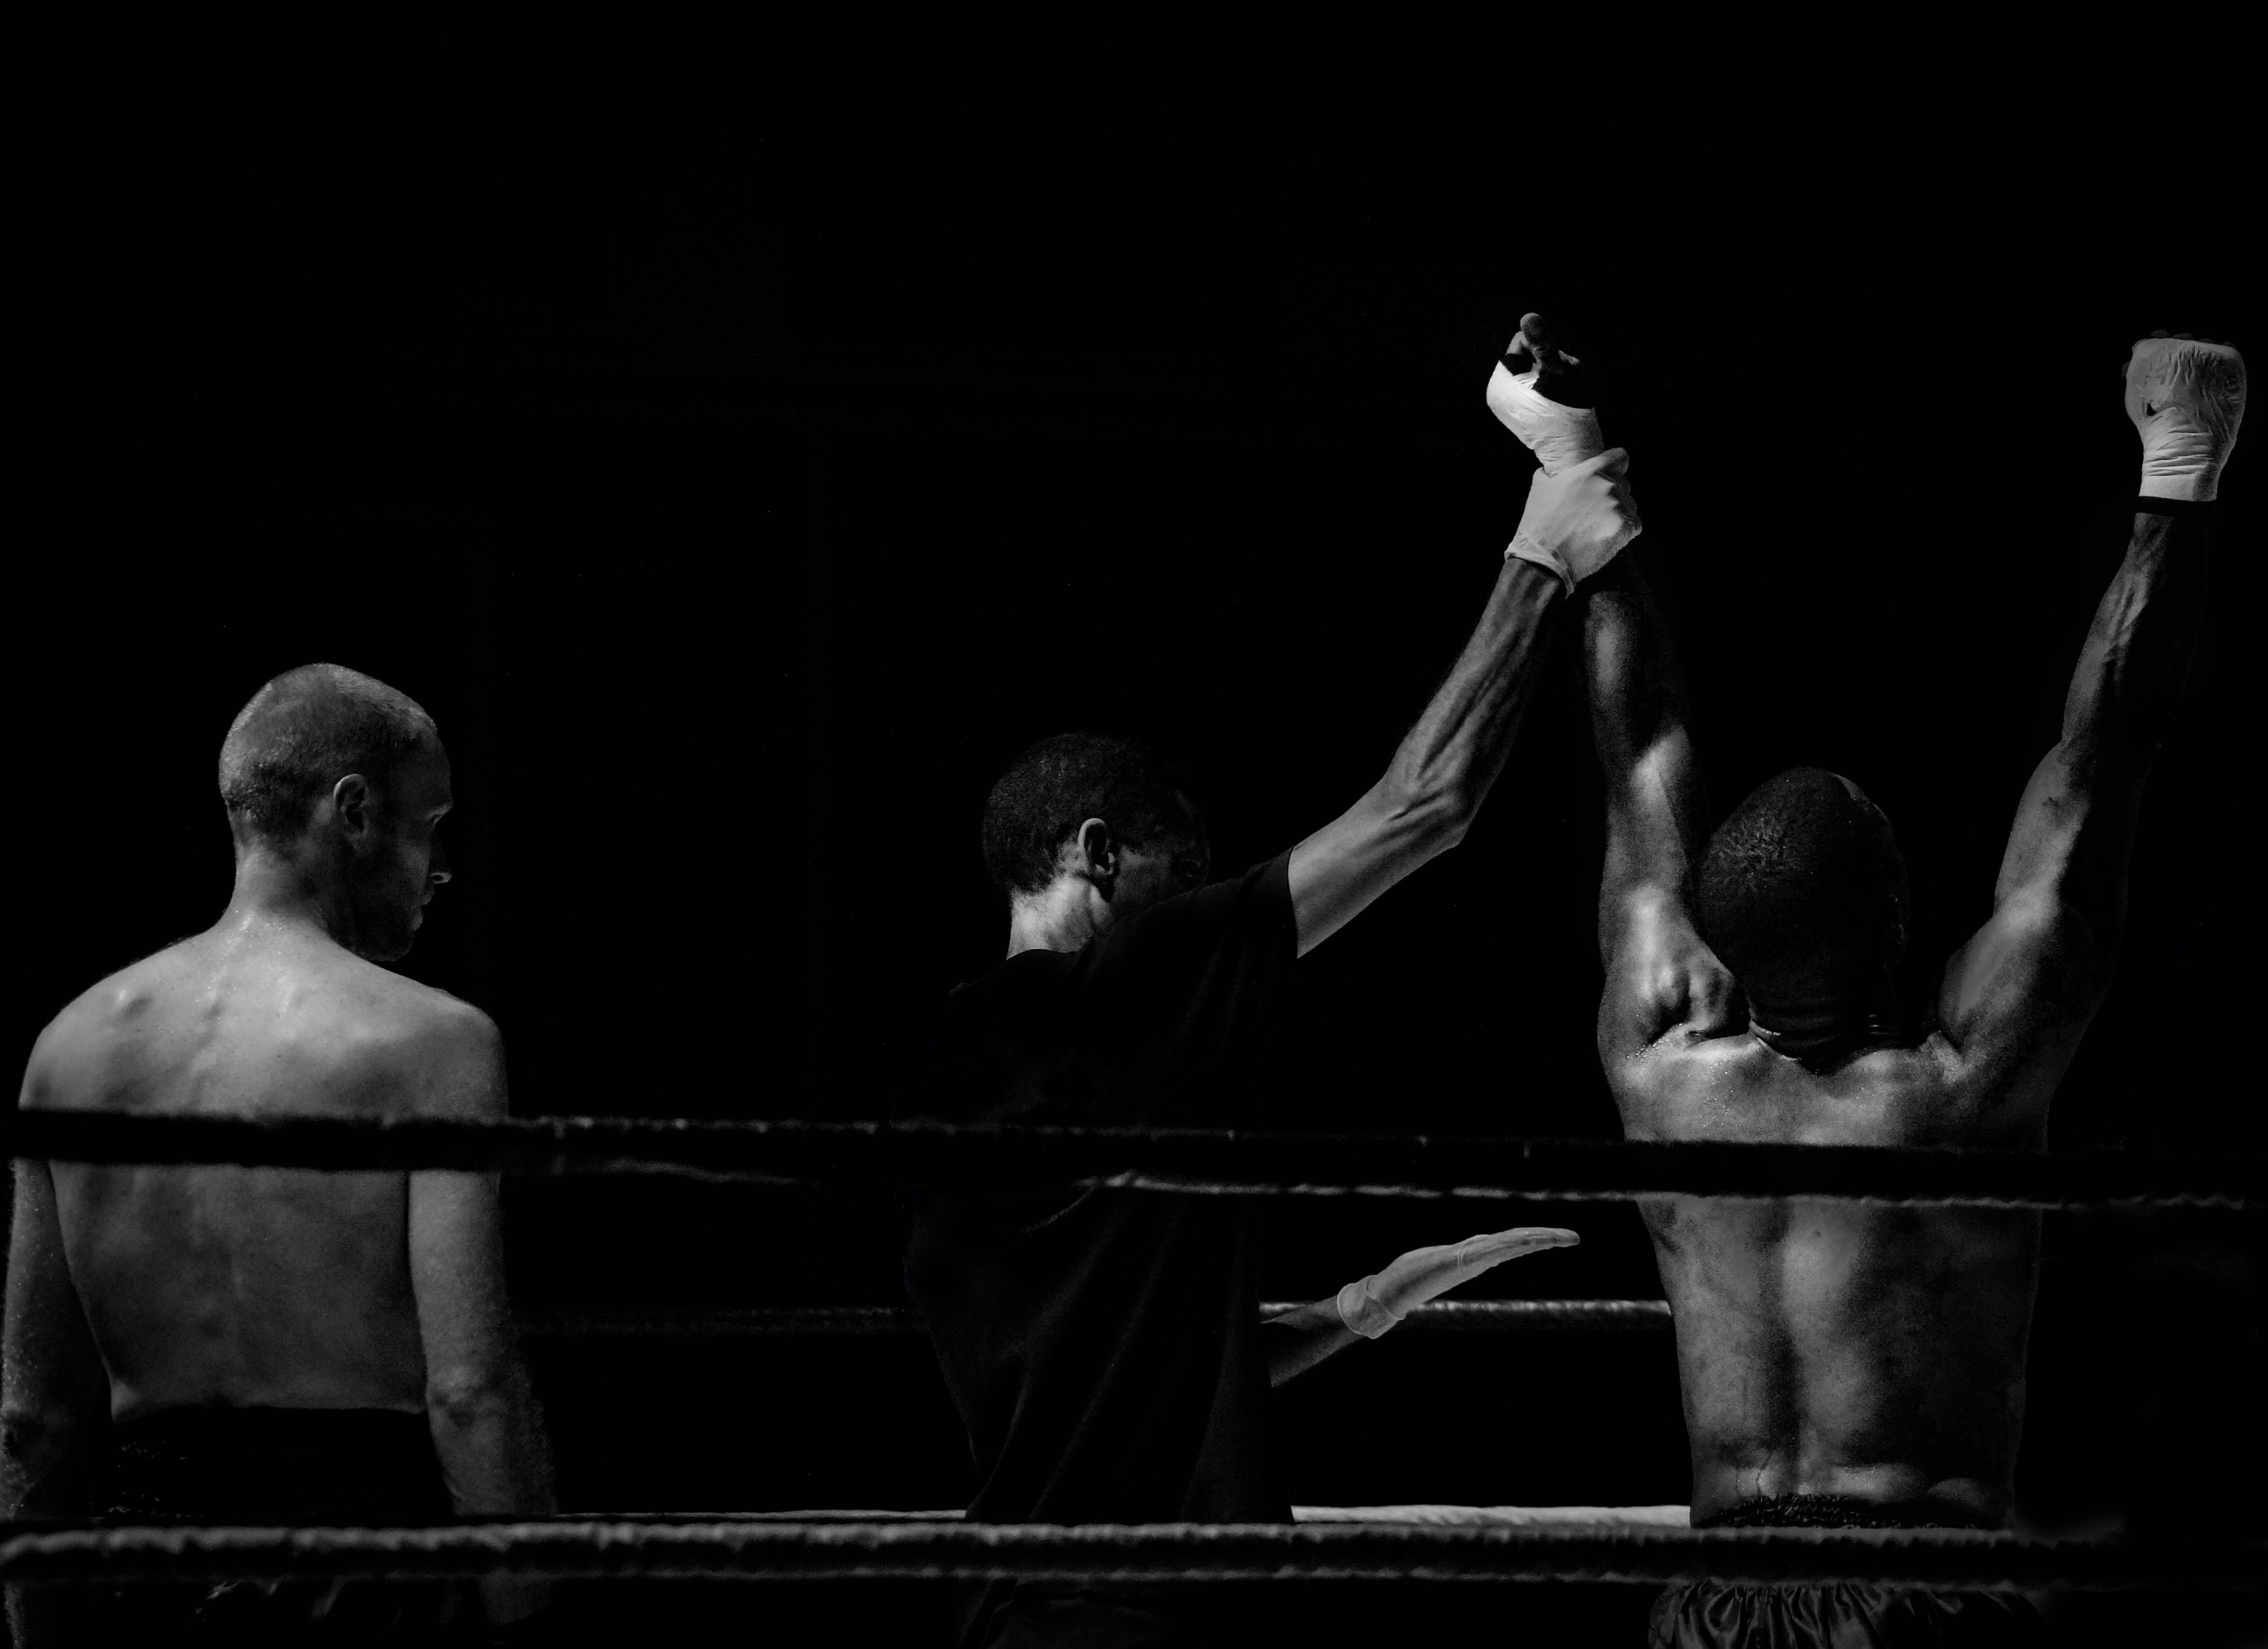 Grayscale Photography of Man Holding Boxer's Hand Inside Battle Ring